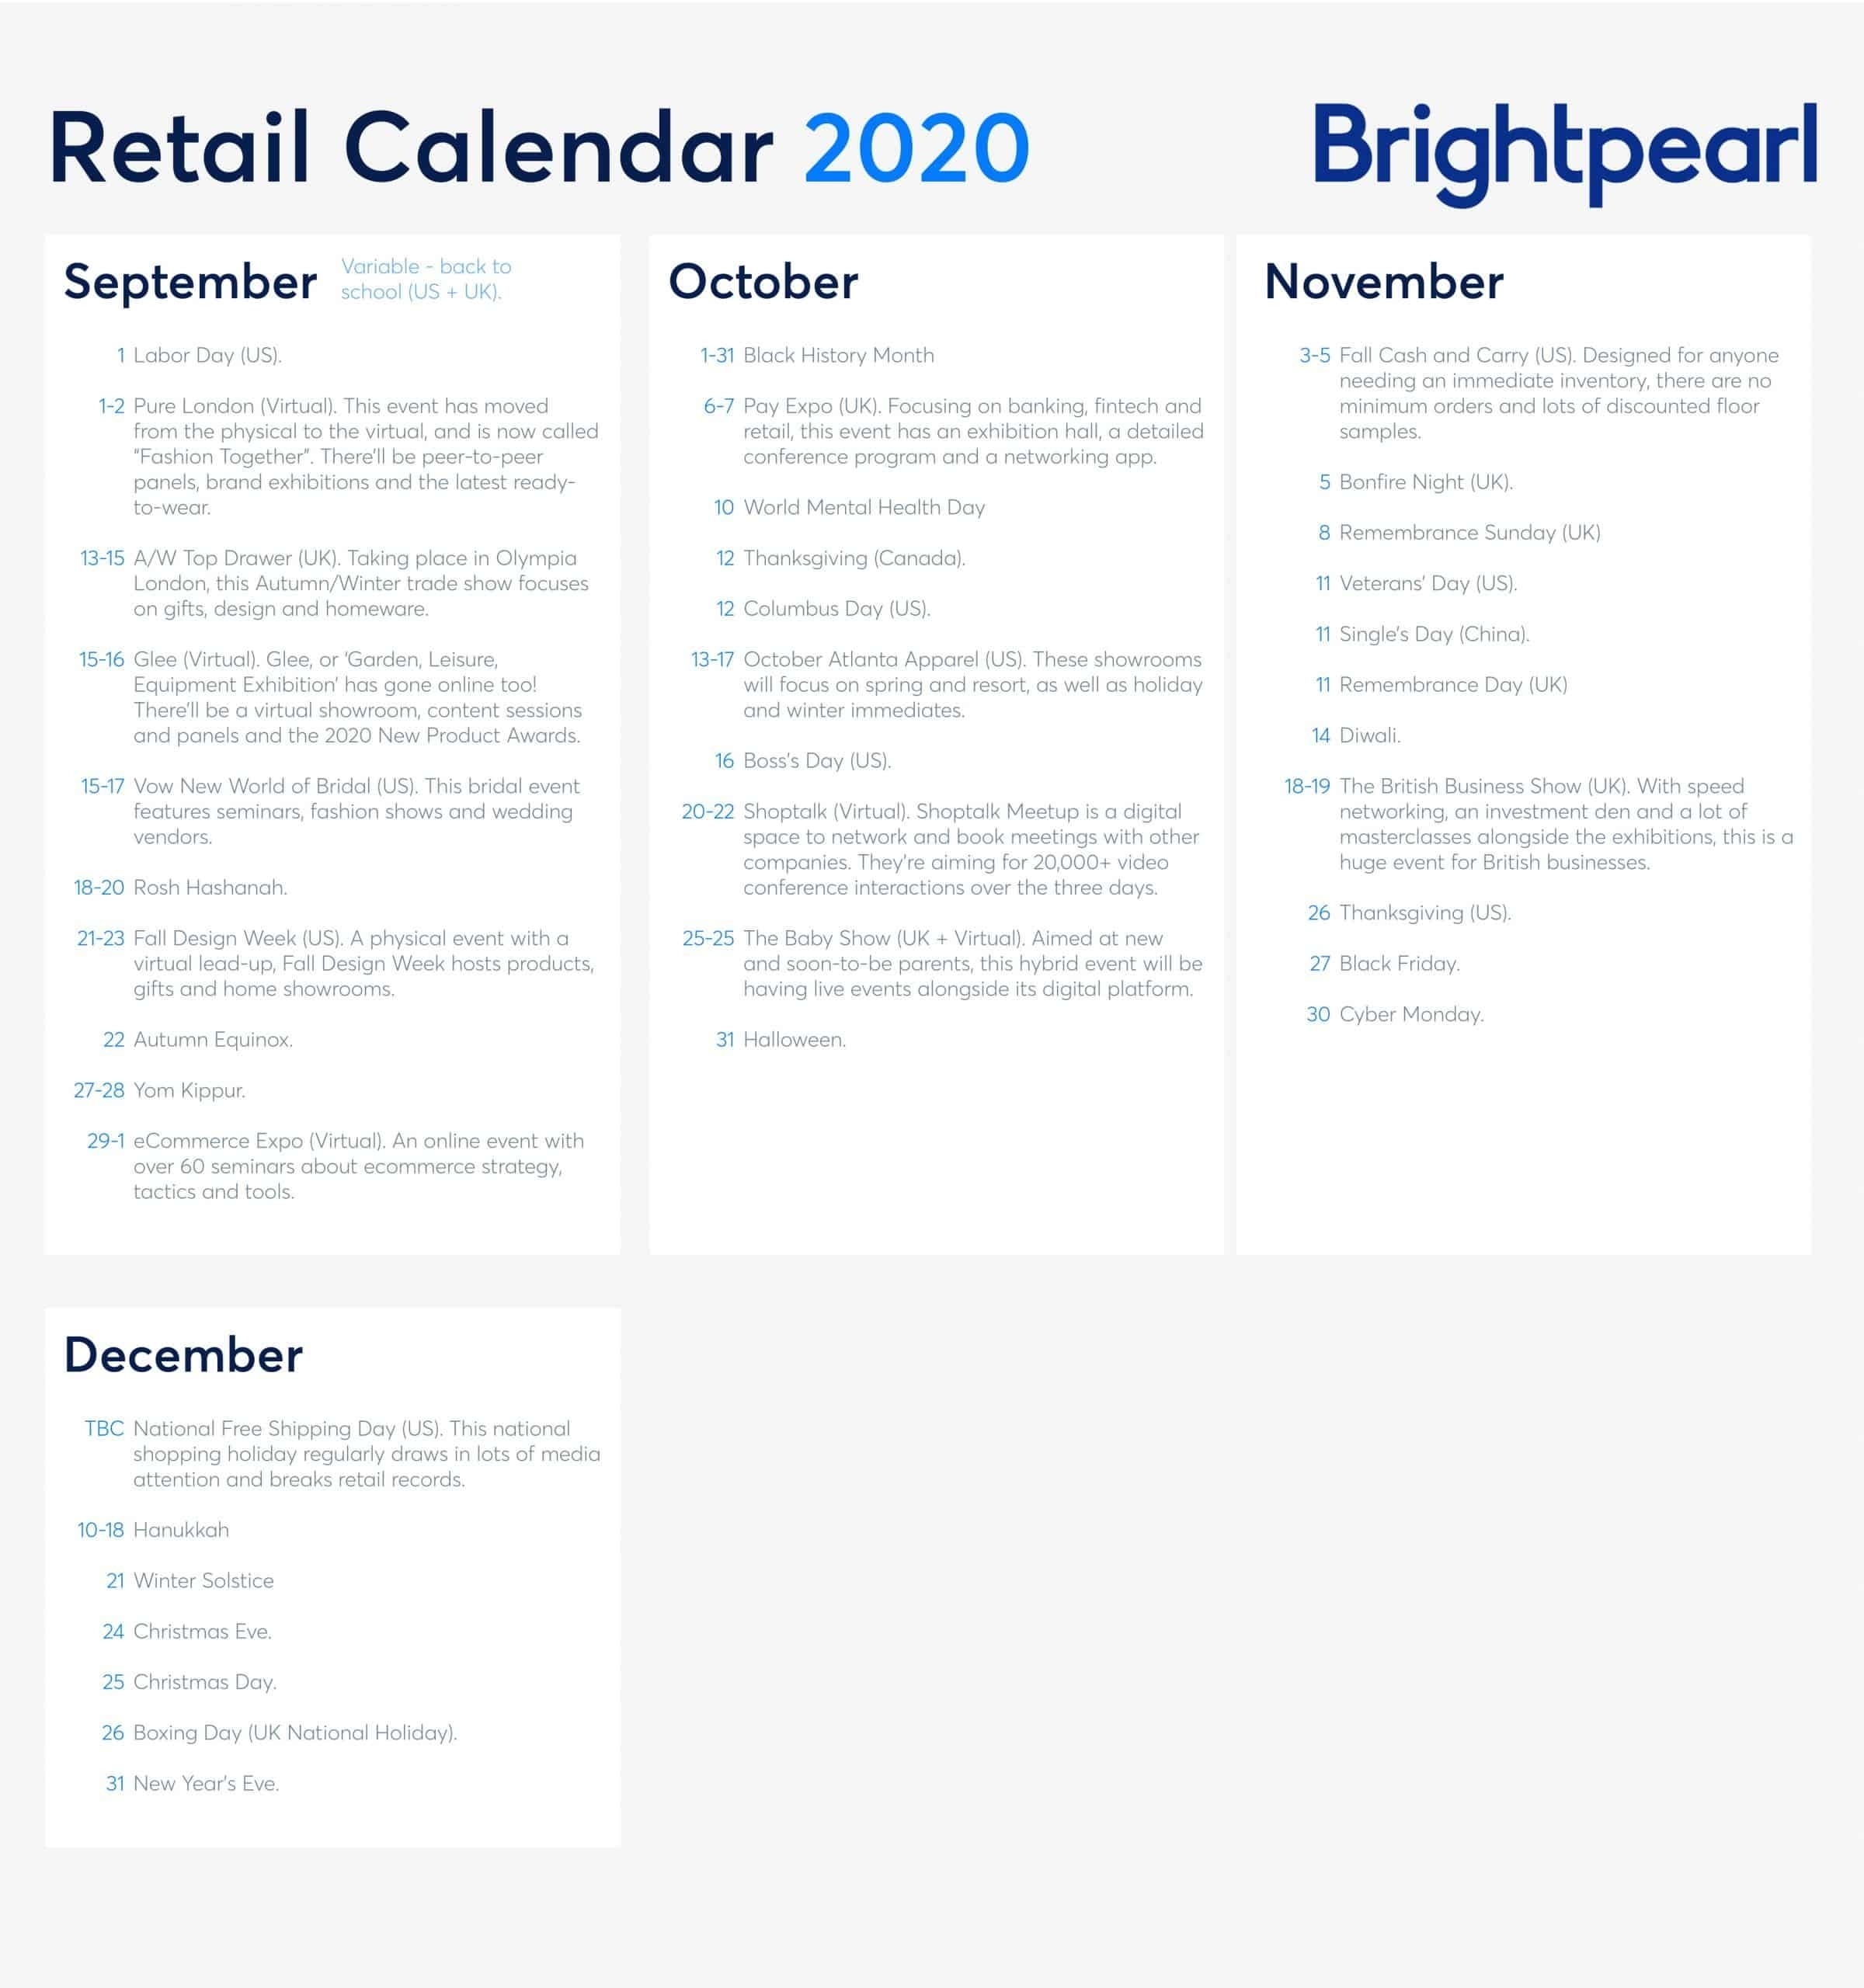 The 2020 And 2021 Retail Calendar: Key Dates You Need To